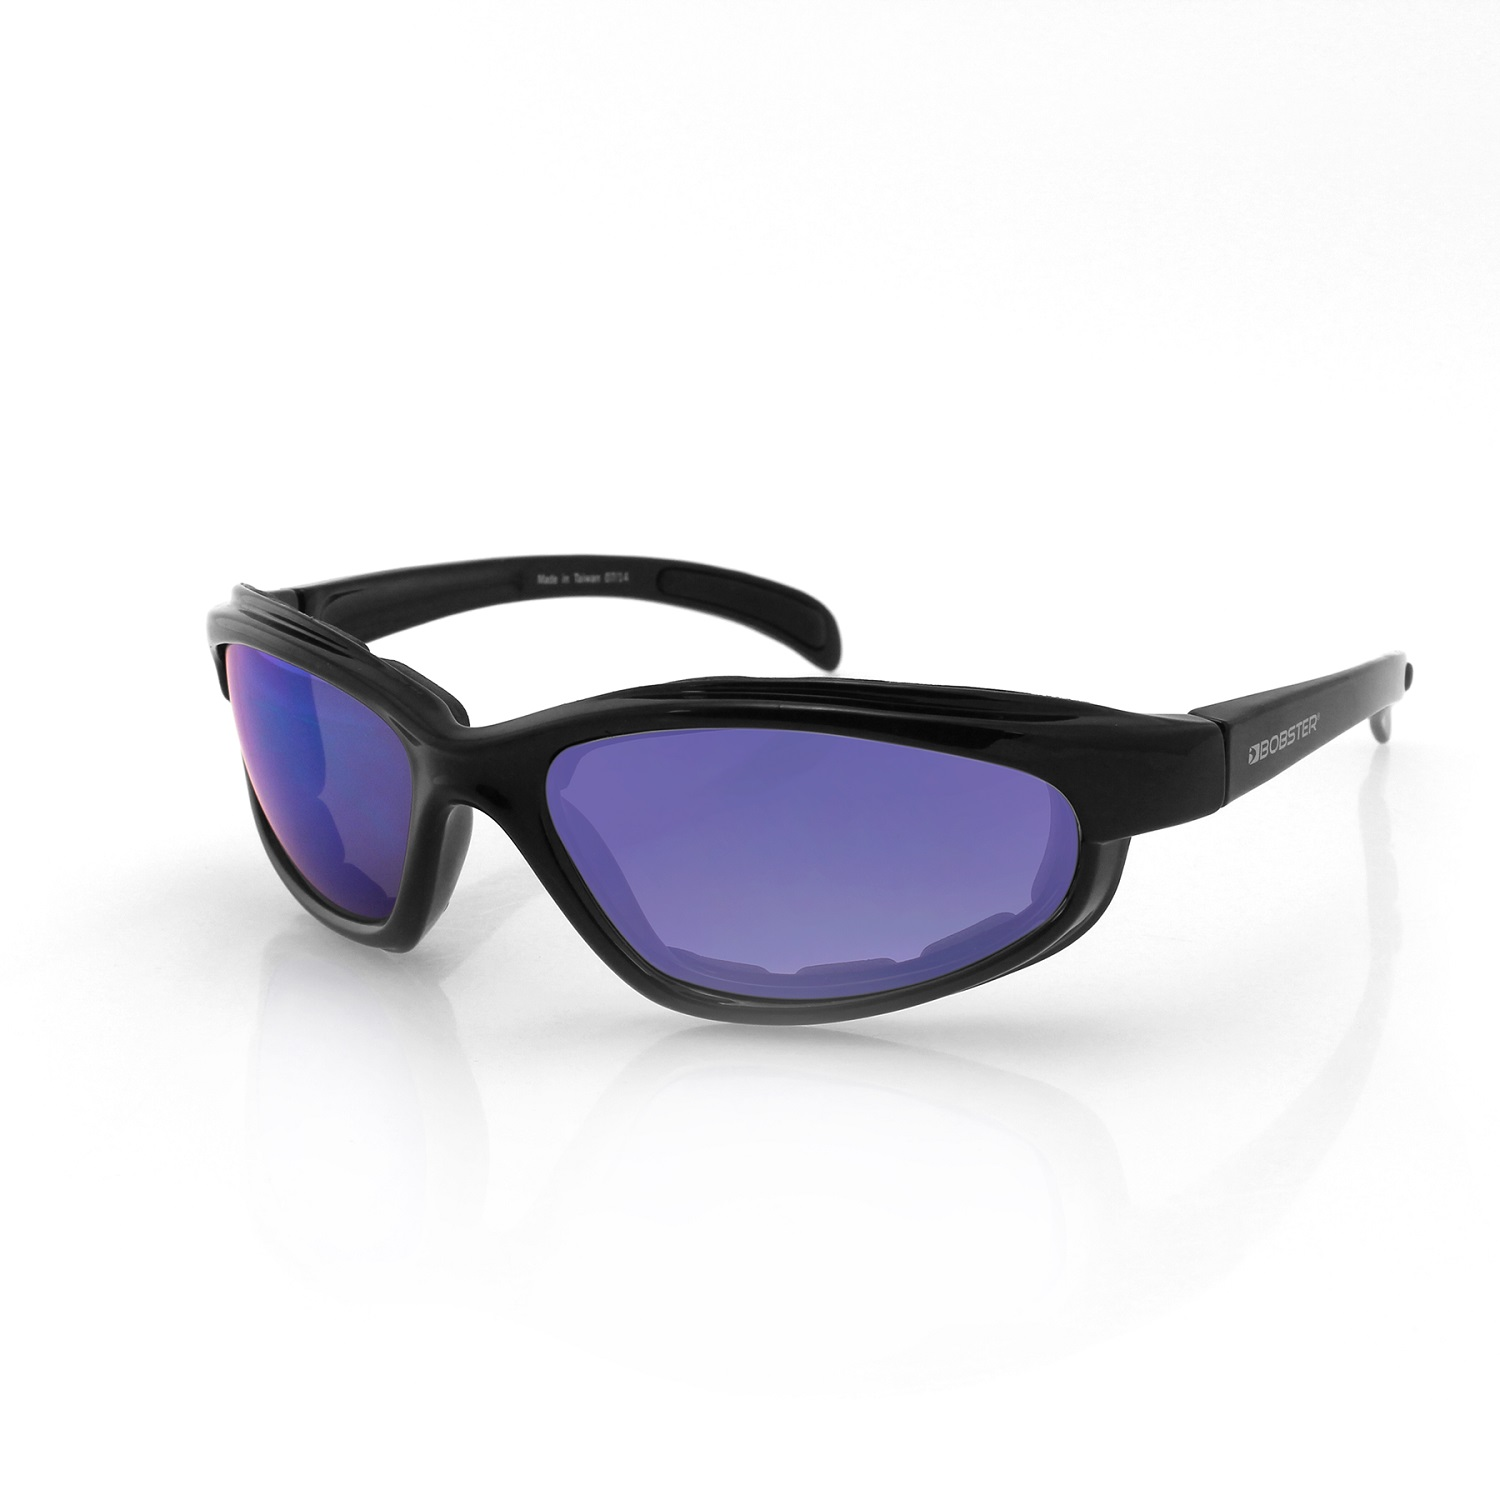 Bobster Fatboy Sunglasses-Black Frame with Smoked Lenses